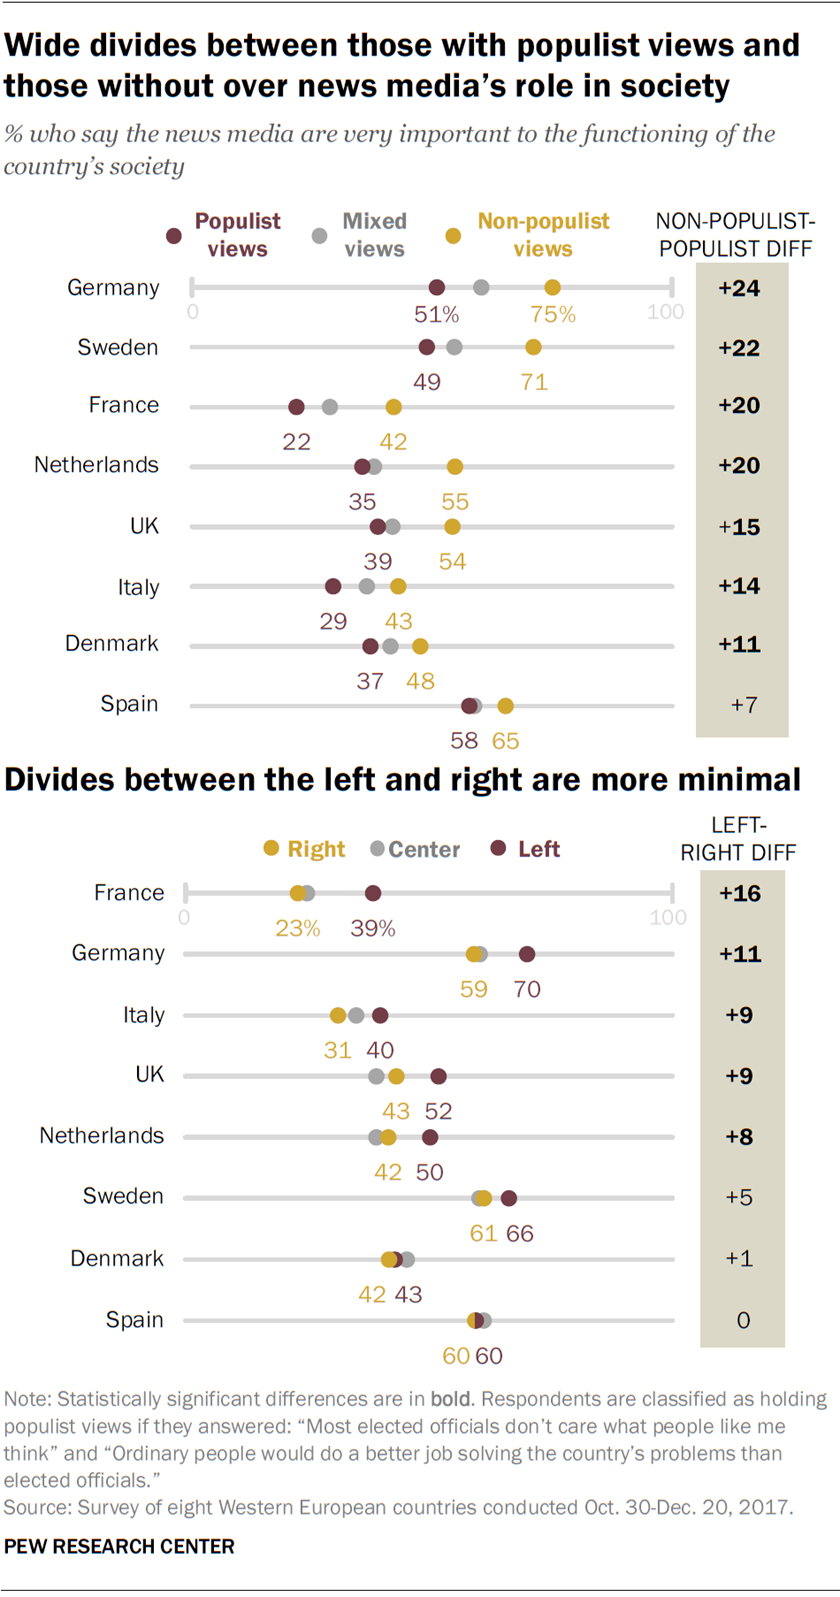 Wide divides between those with populist views and those without over news media's role in society